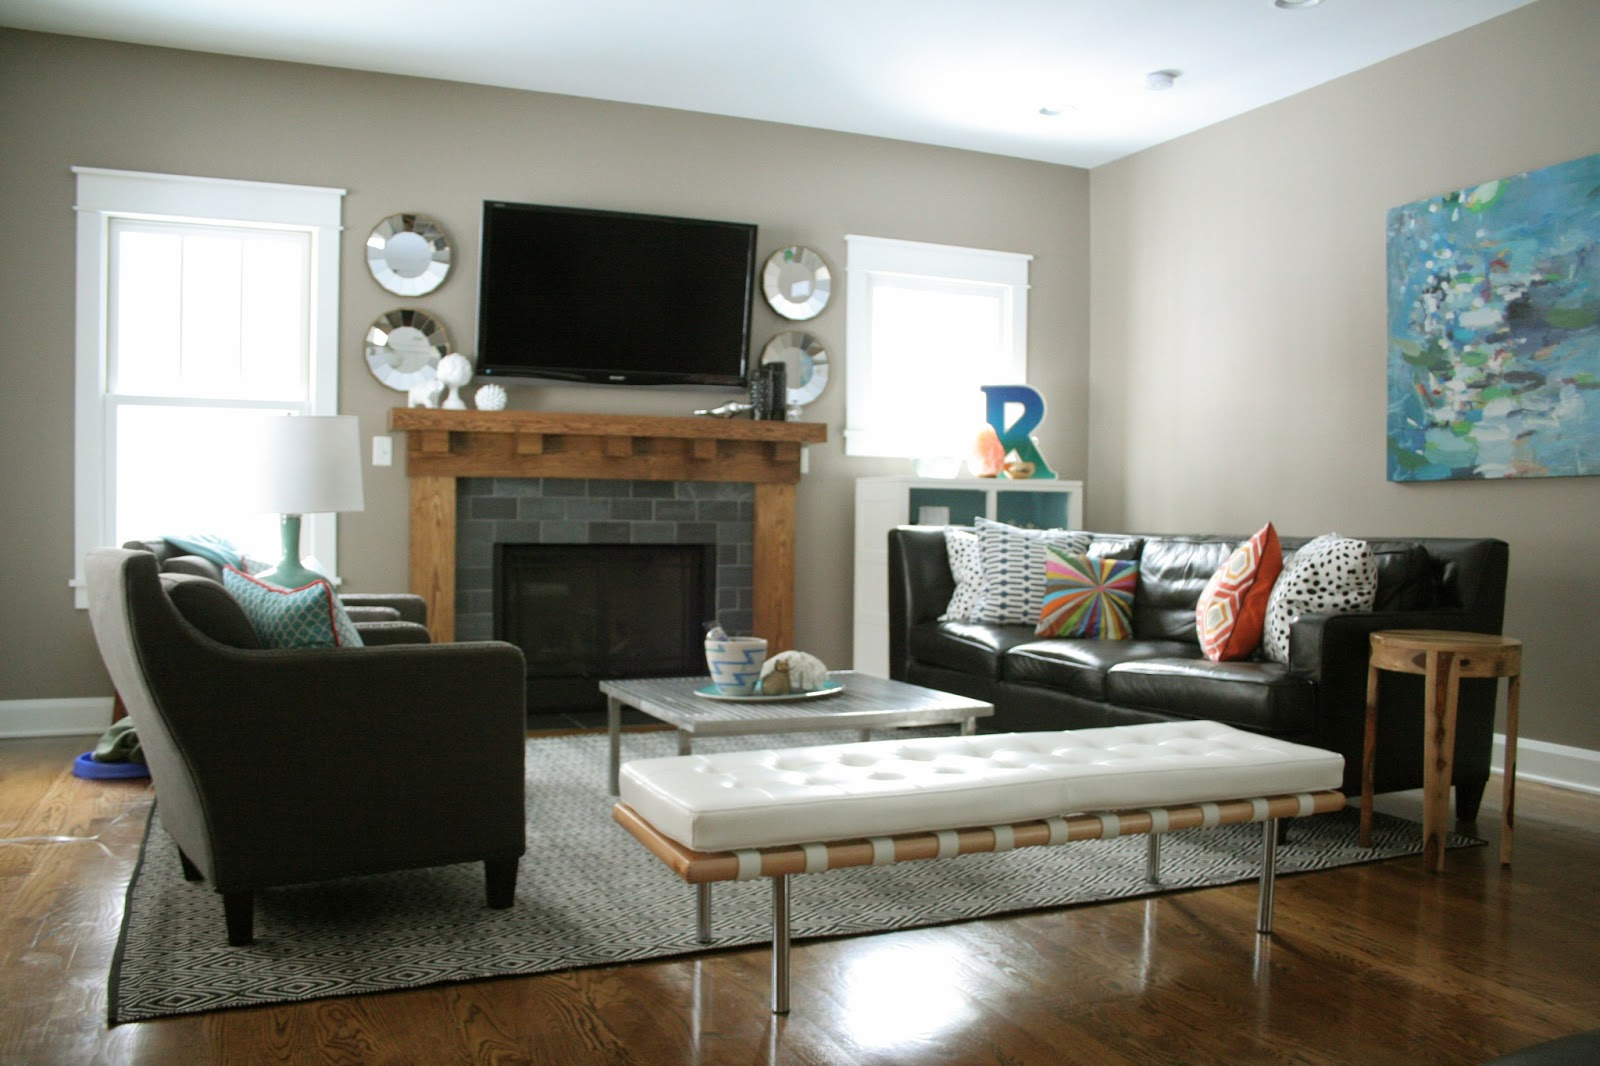 Interesting Living Room Layout with Dark Sofas and Wide Coffee Table on Grey Carpet